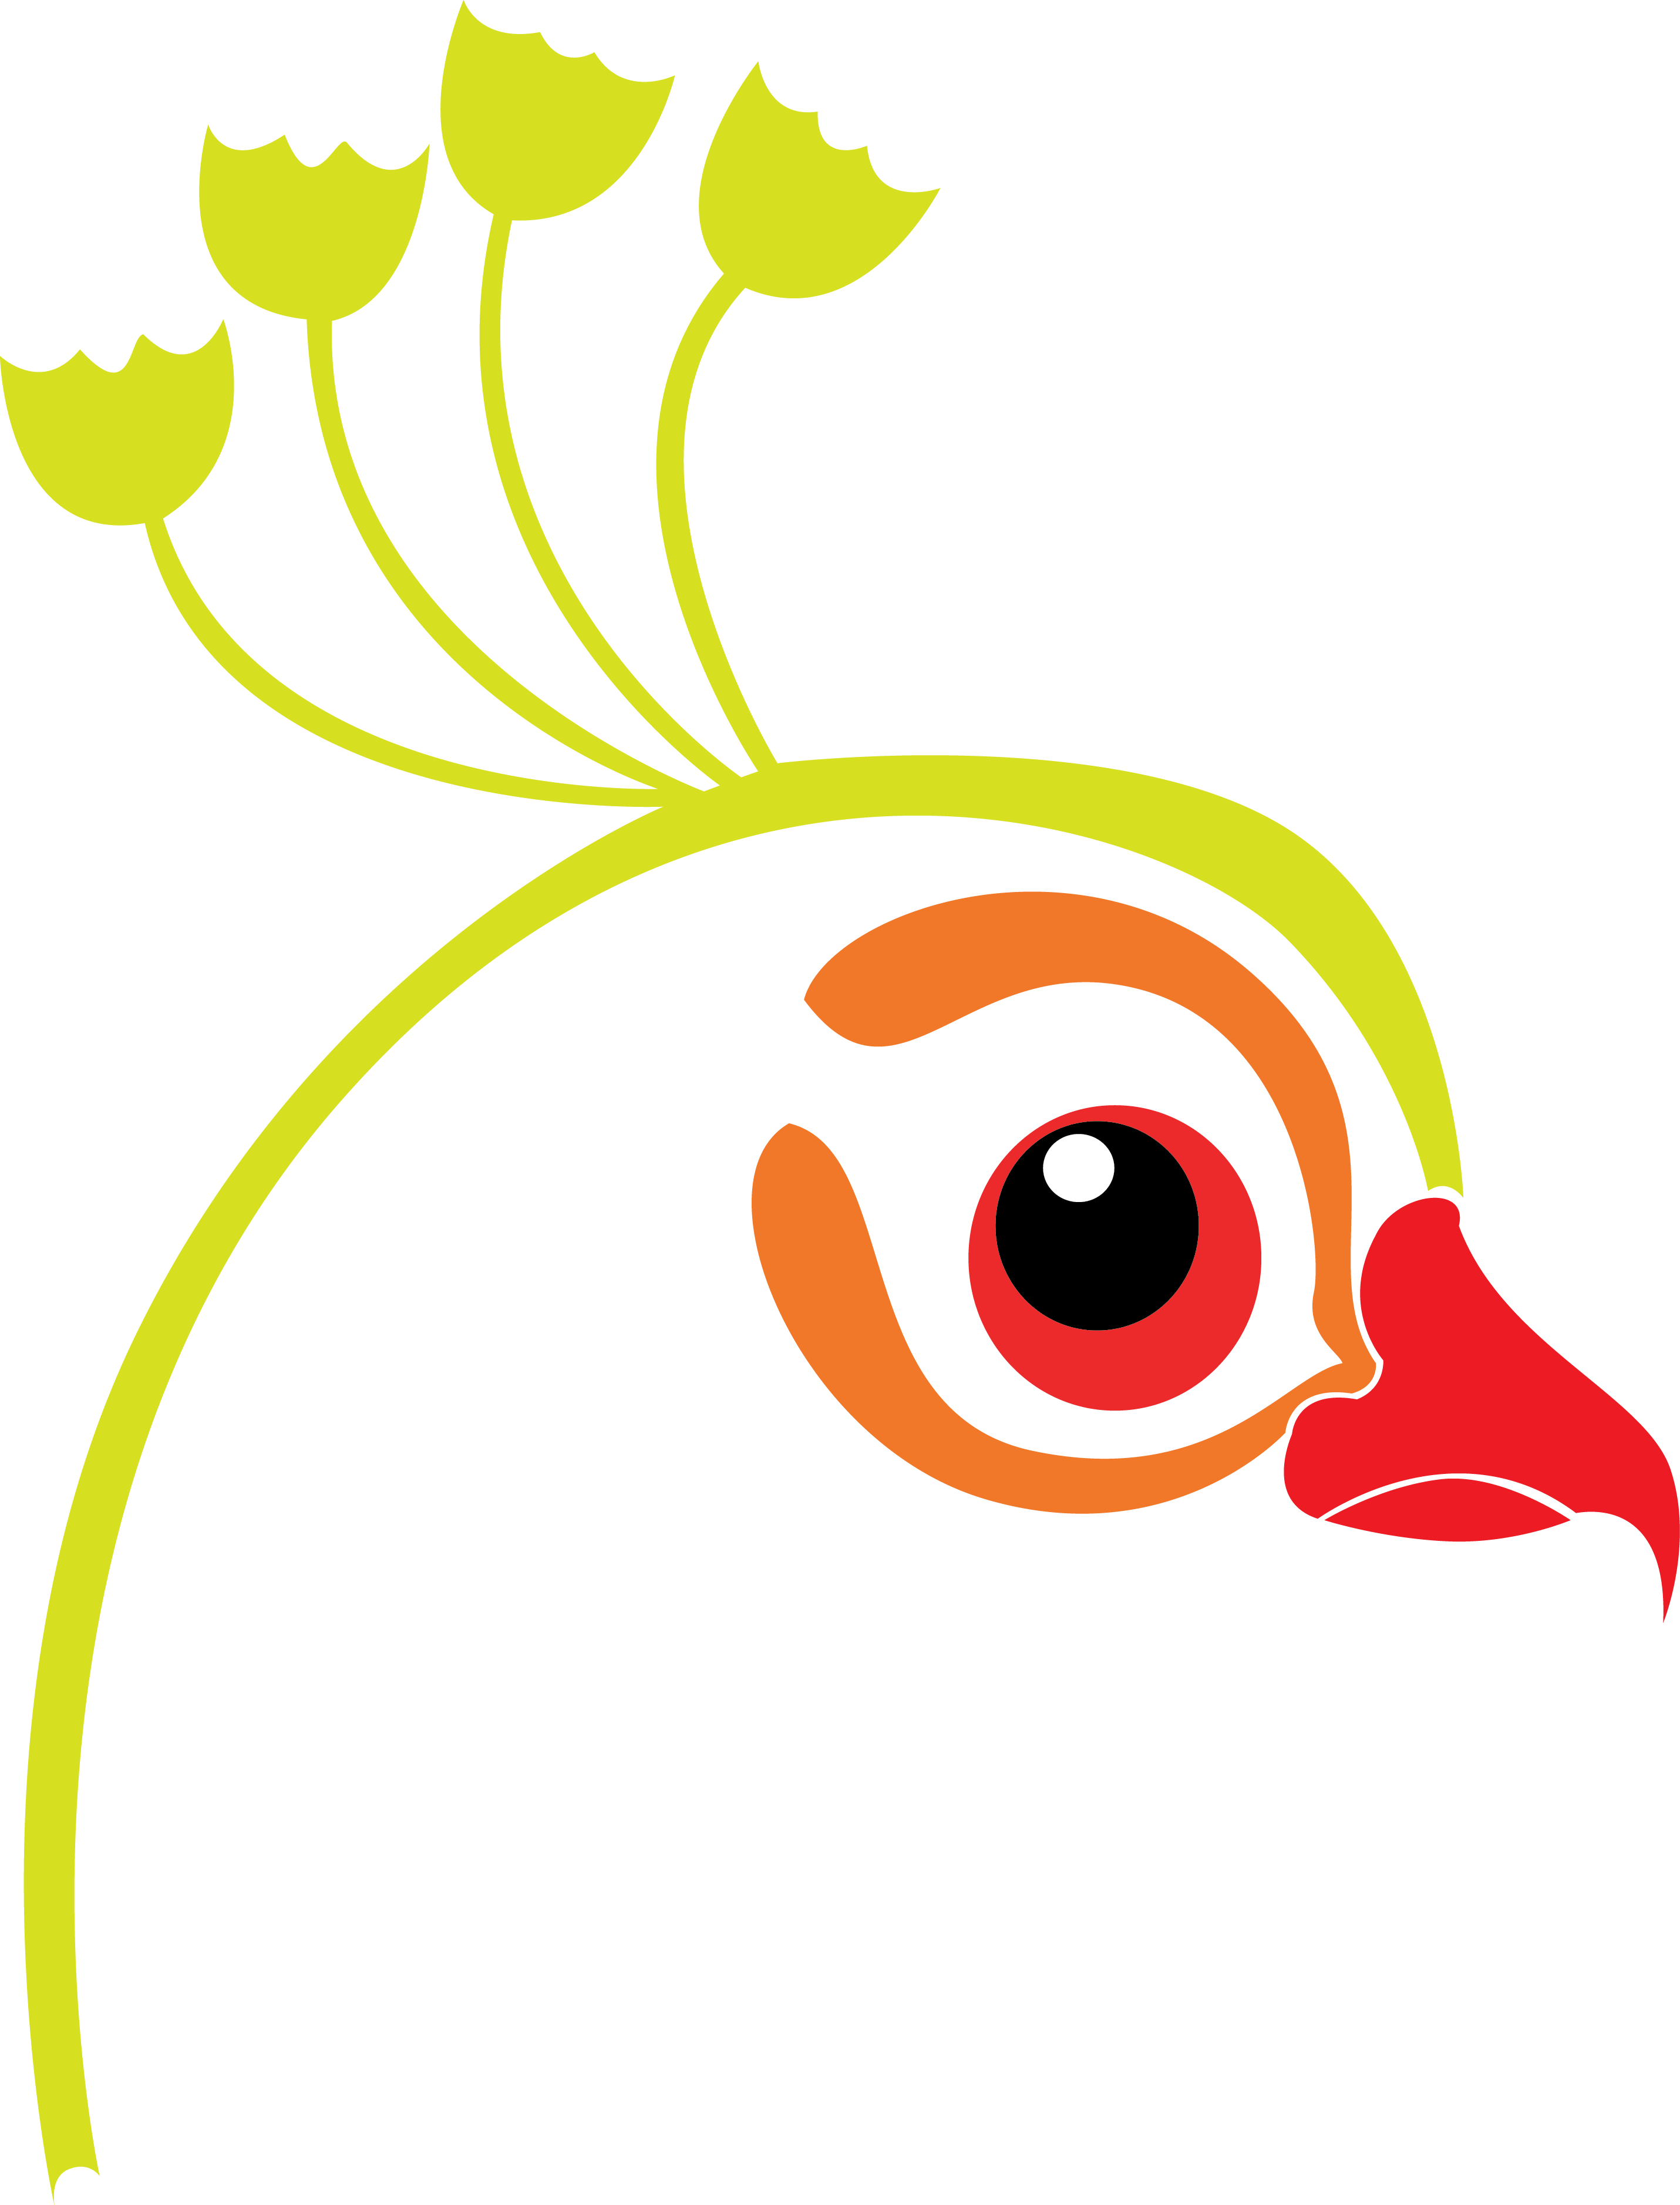 peacock clipart abstract